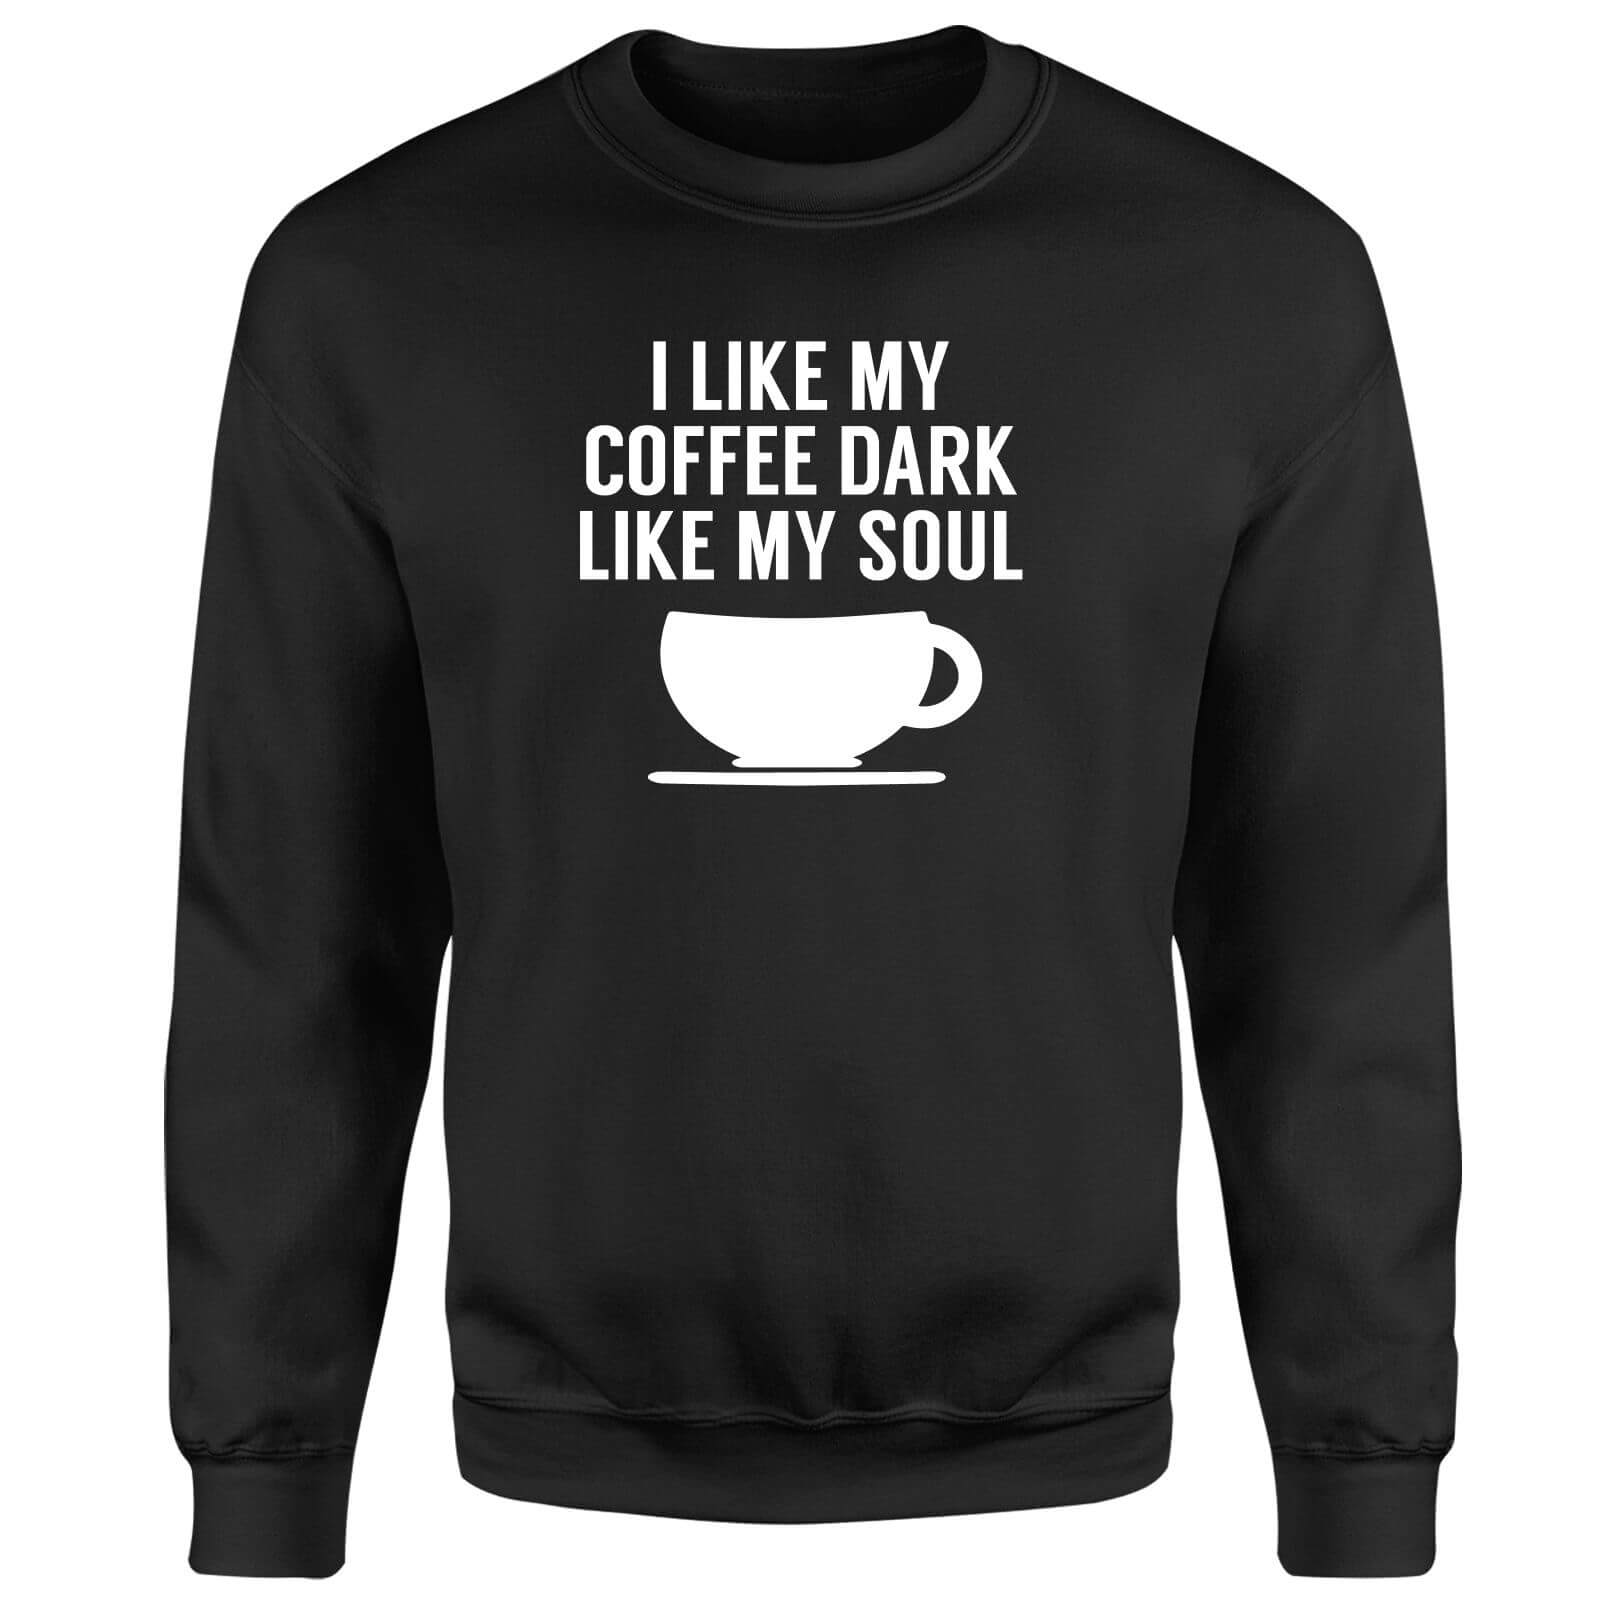 I Like my Coffee Dark Like my Soul Sweatshirt - Black